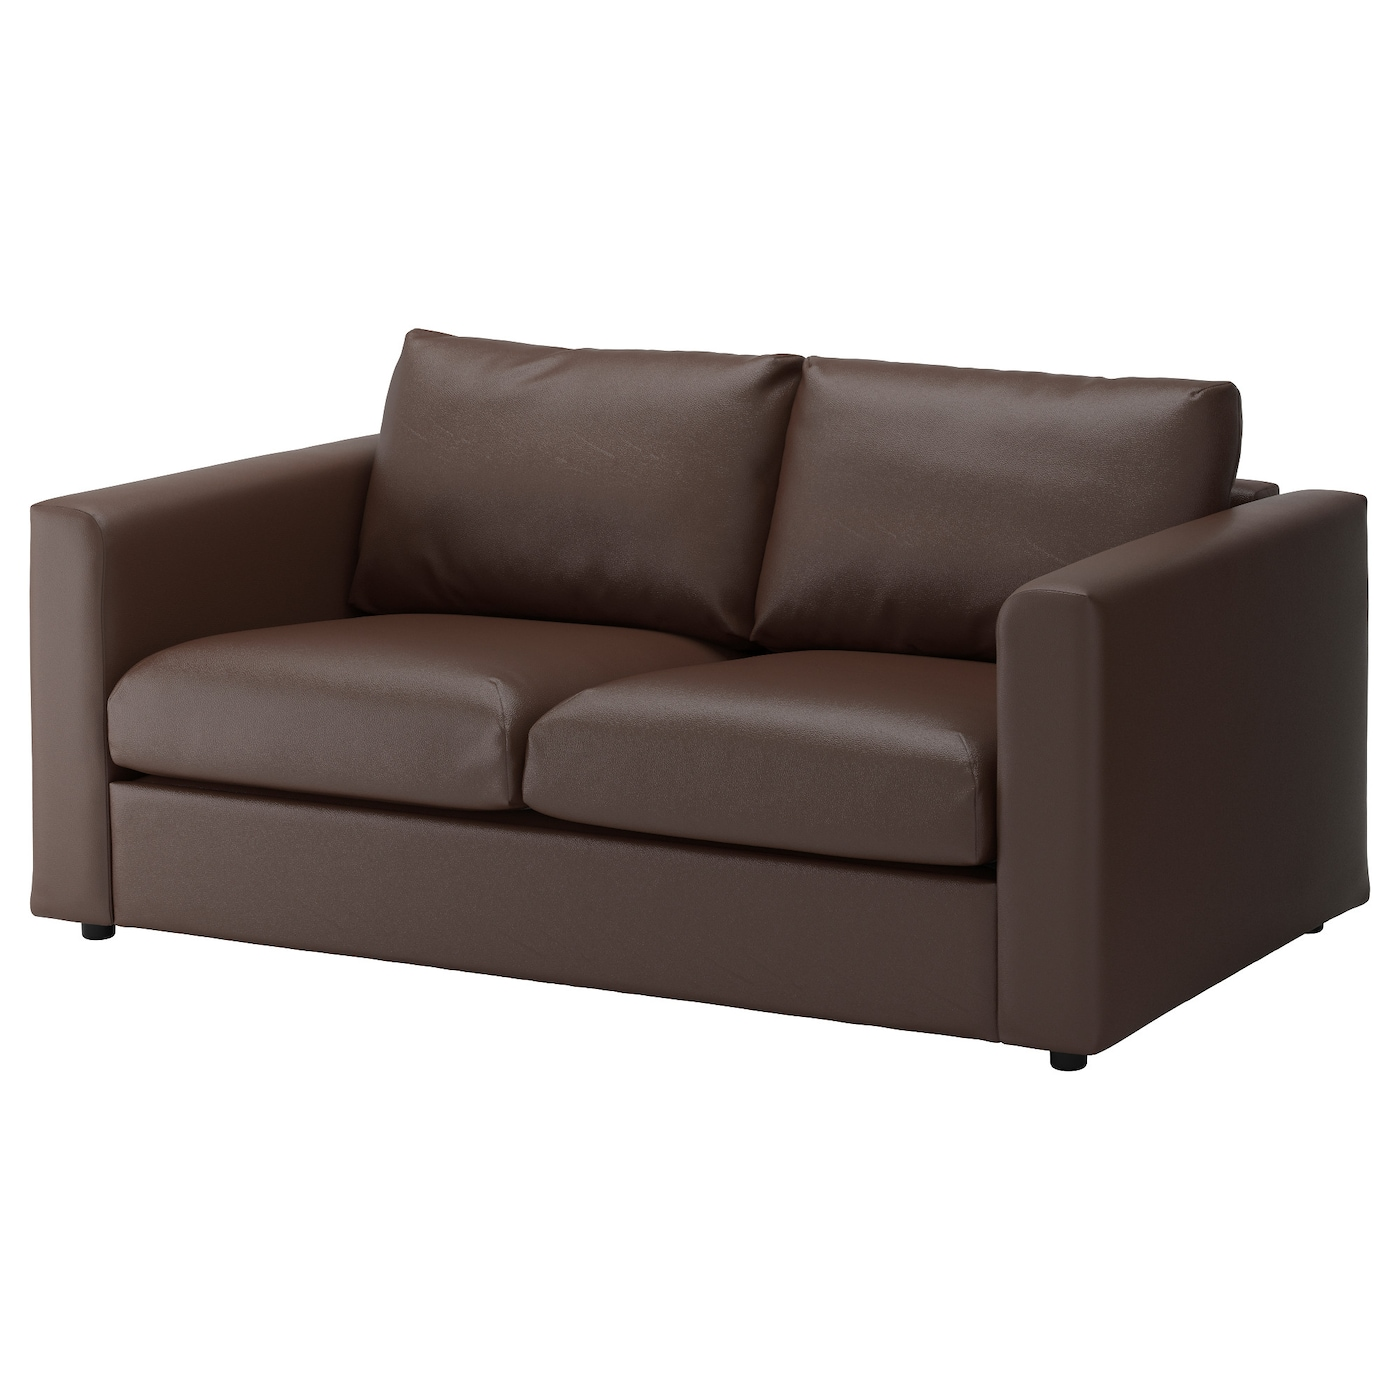 2 sofa modern 2 seater sofas quality from boconcept thesofa Small modern sofa